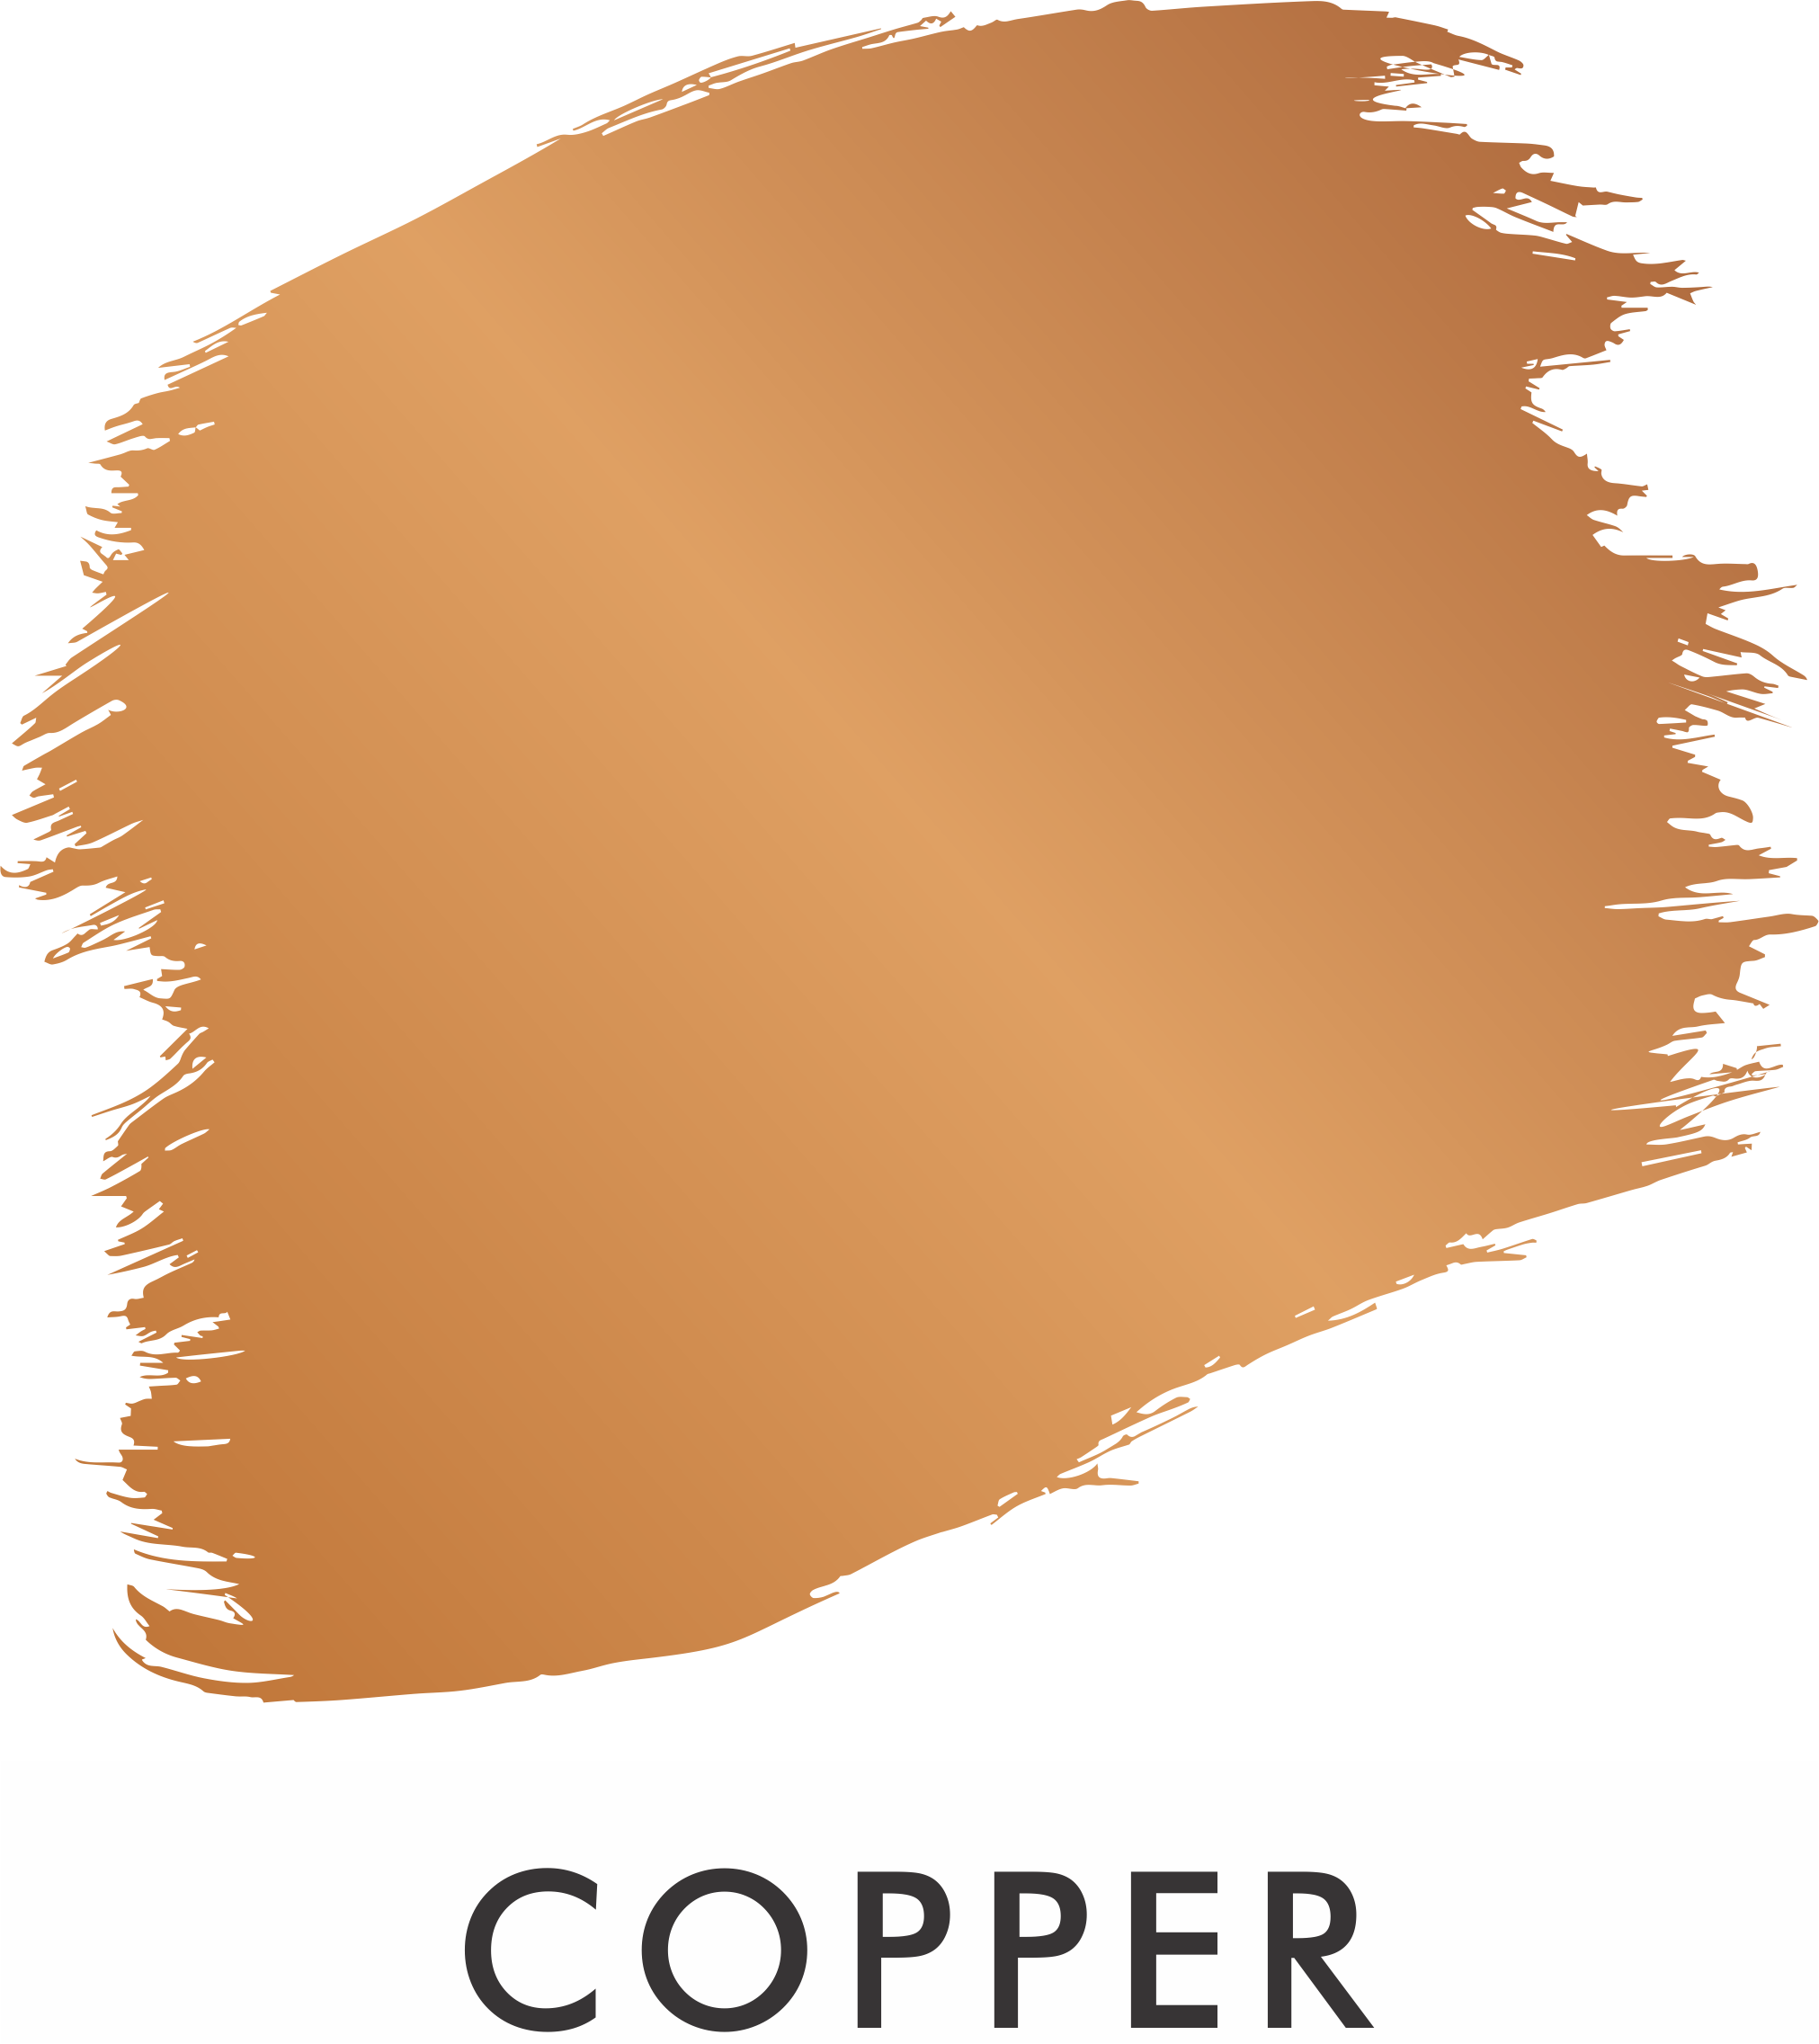 COPPER.png